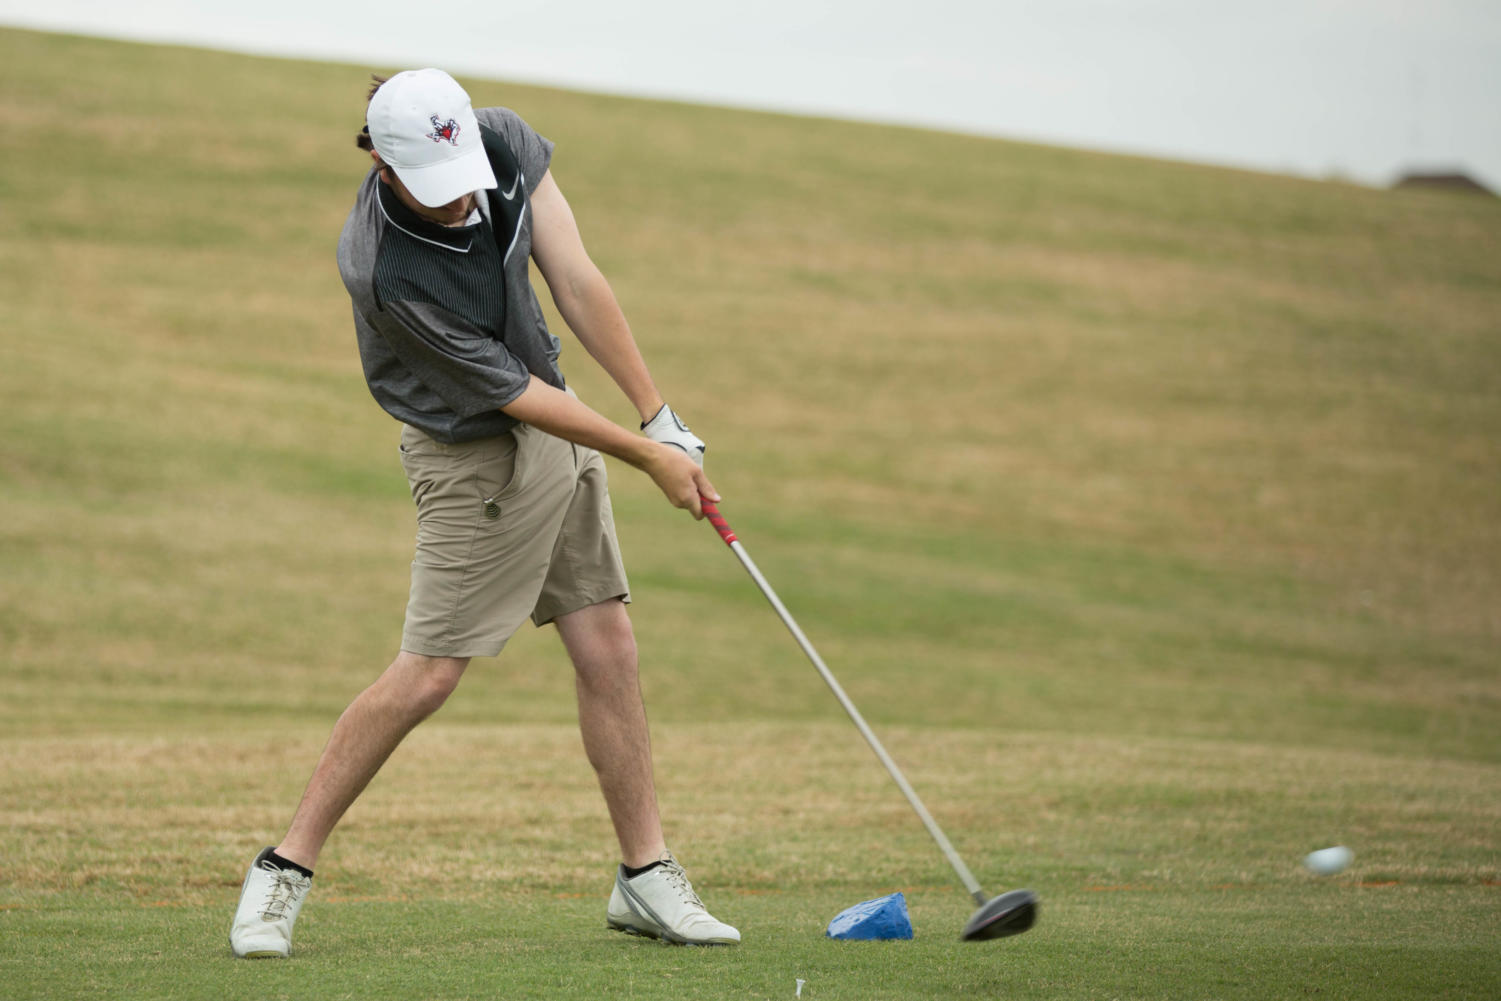 Eagles tee off at 8:00 a.m. for the Robson Ranch Golf Tournament at Robson Ranch in Argyle, TX on March 5, 2018. (GiGi Robertson / The Talon News)